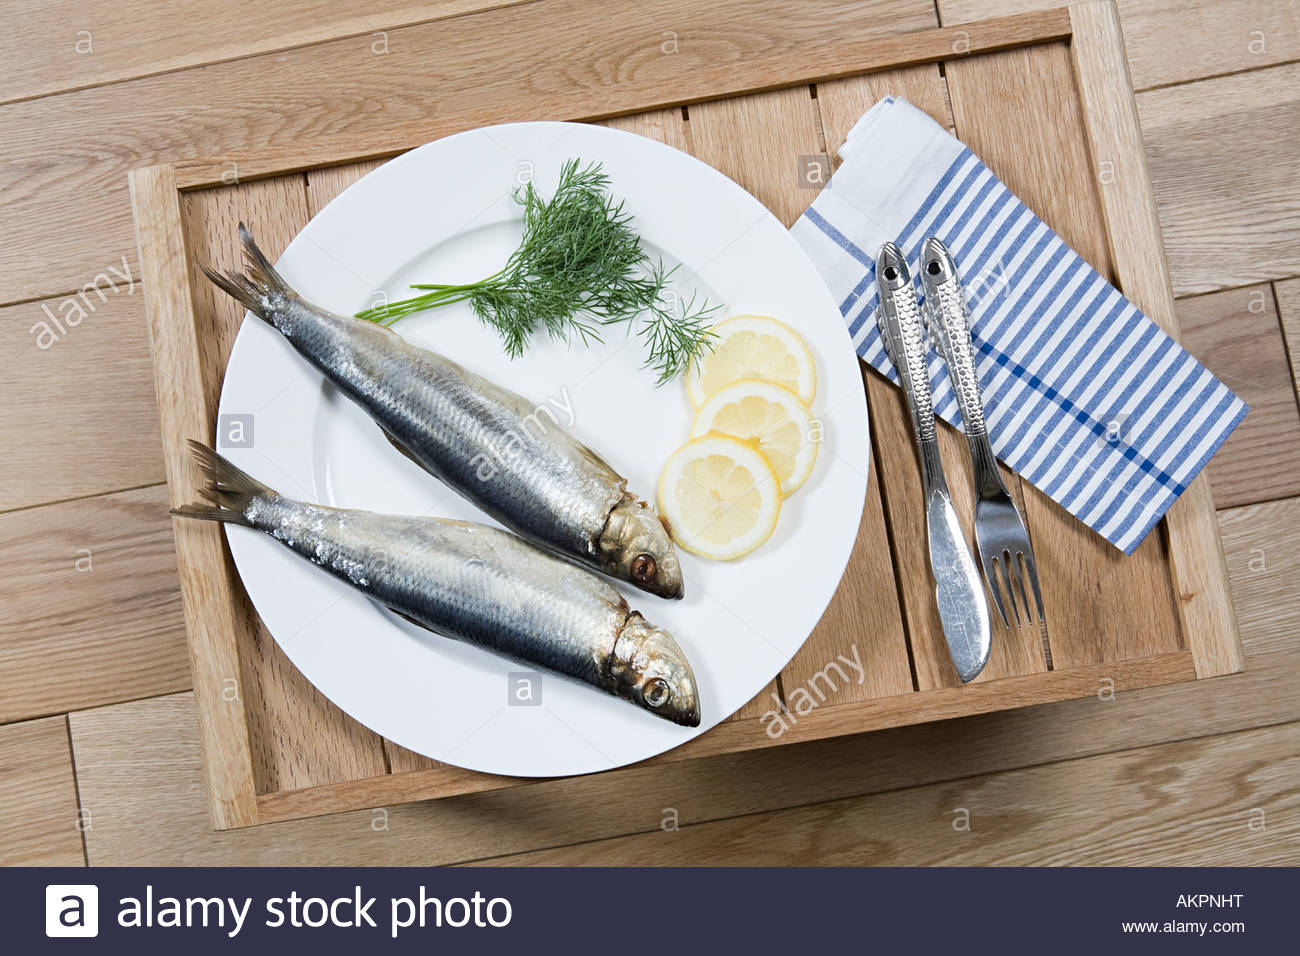 Meal of fish on a tray Stock Photo